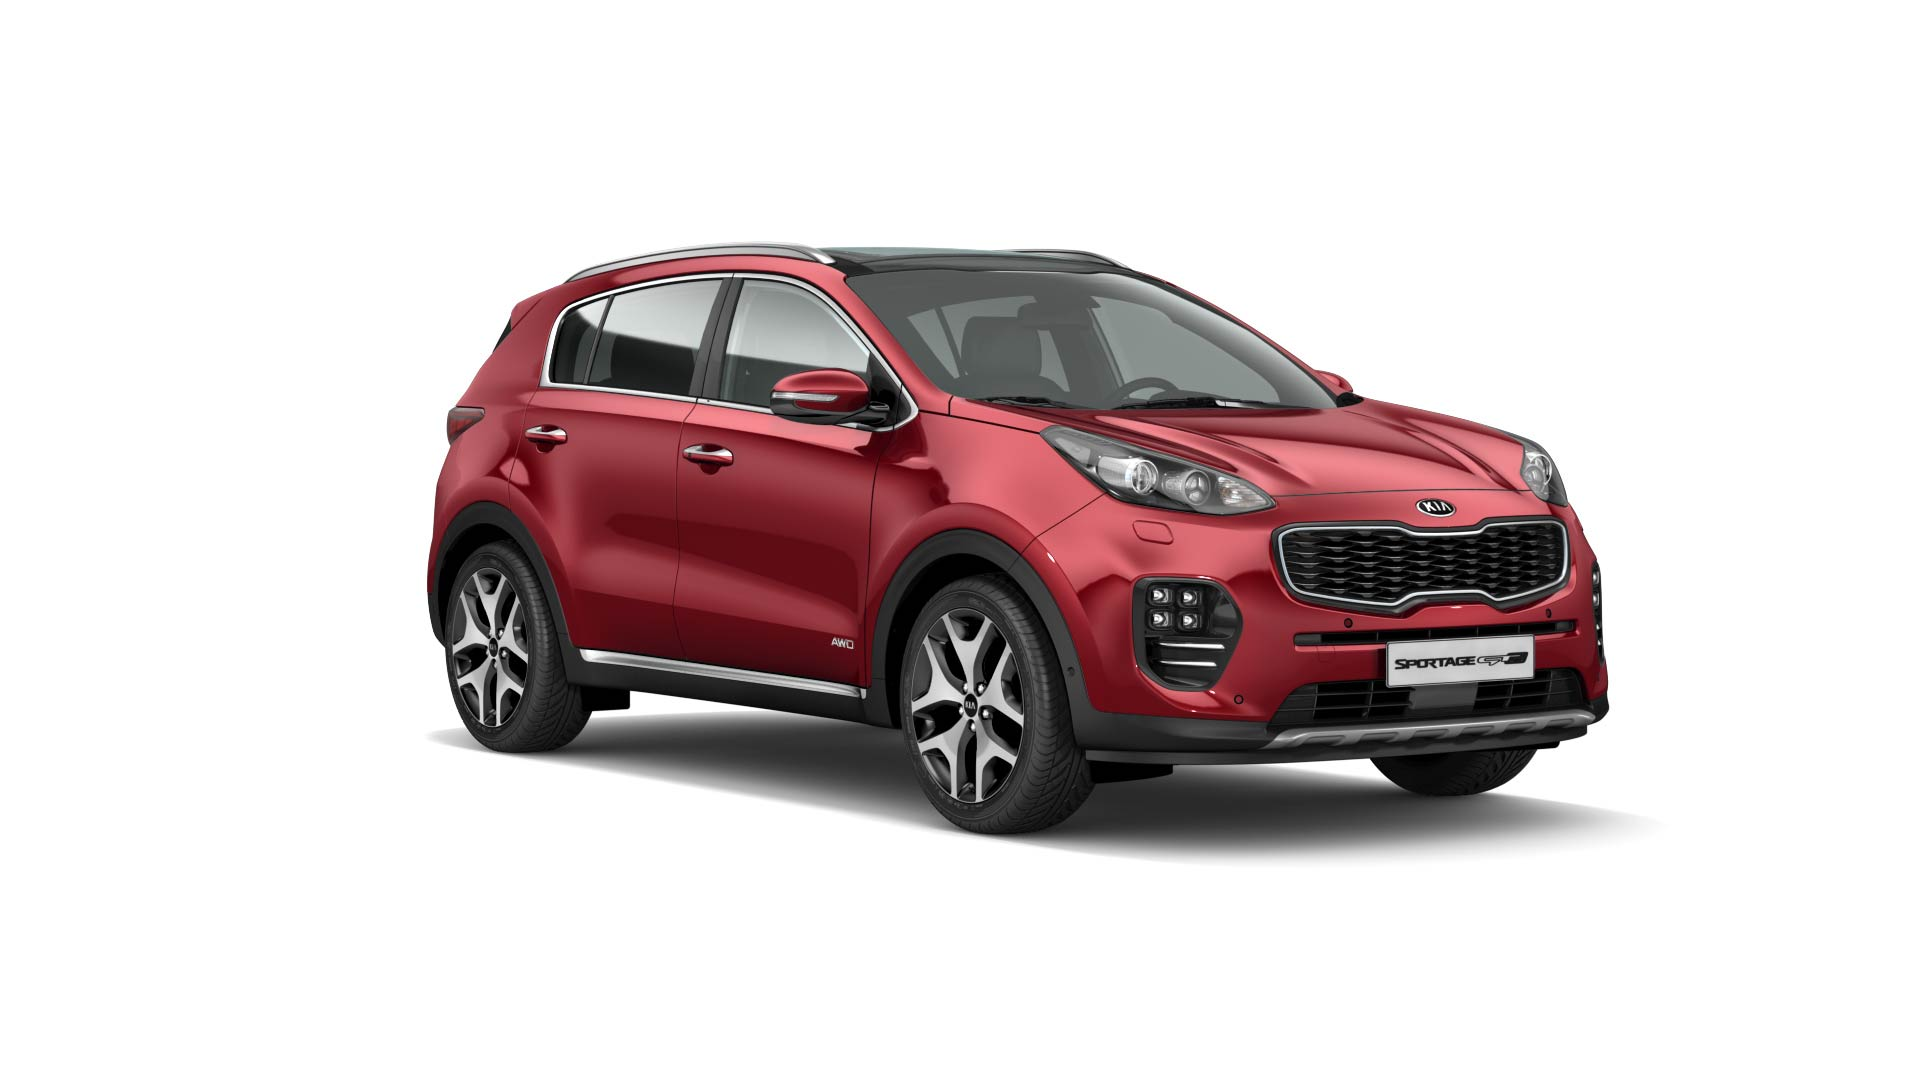 d couvrez le kia sportage suv crossover kia motors france. Black Bedroom Furniture Sets. Home Design Ideas